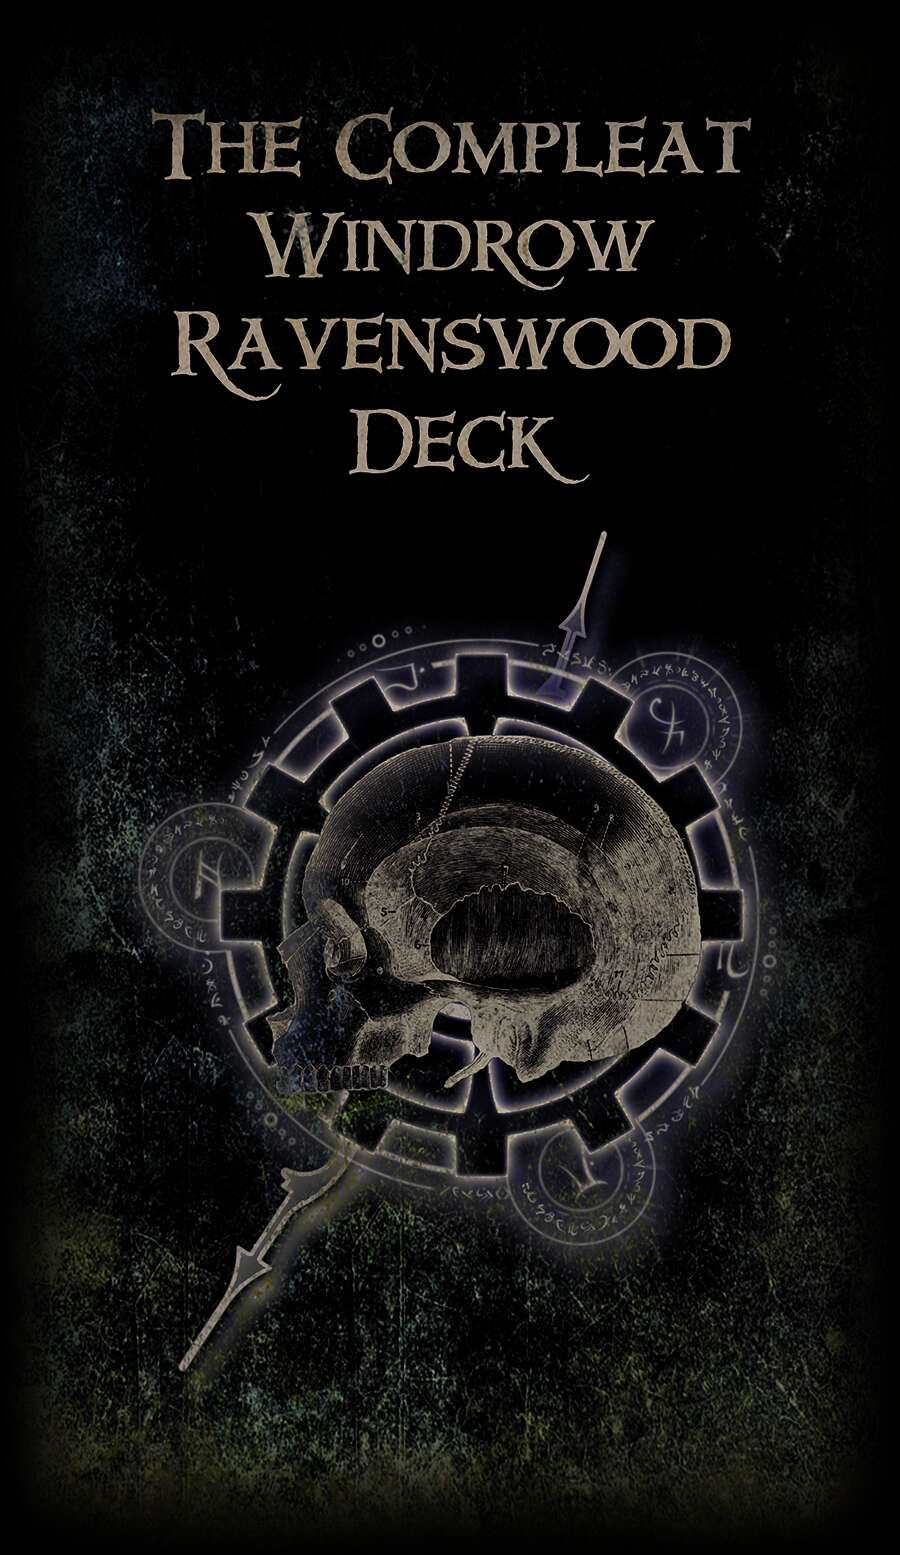 The Compleat Windrow-Ravenswood Deck